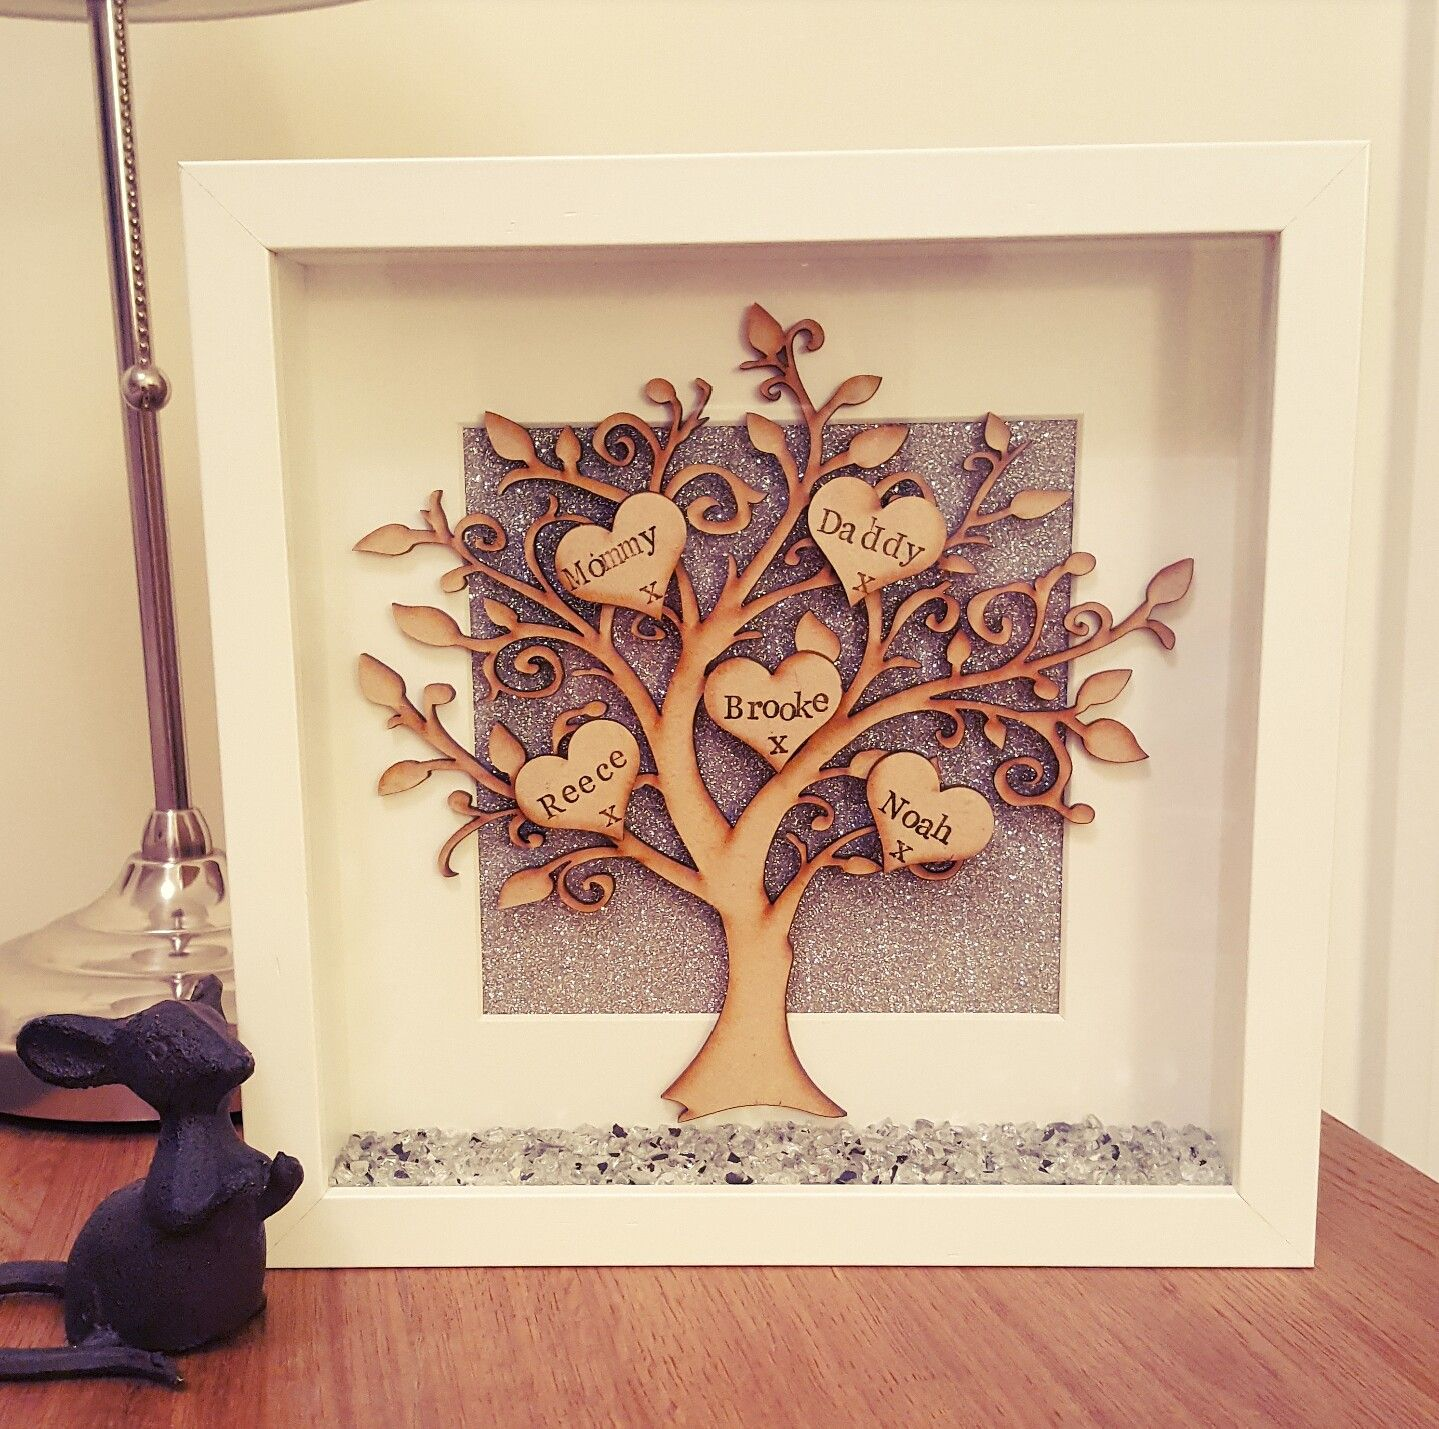 Beautiful family tree frame #boxframe #family #sparkle #love ...